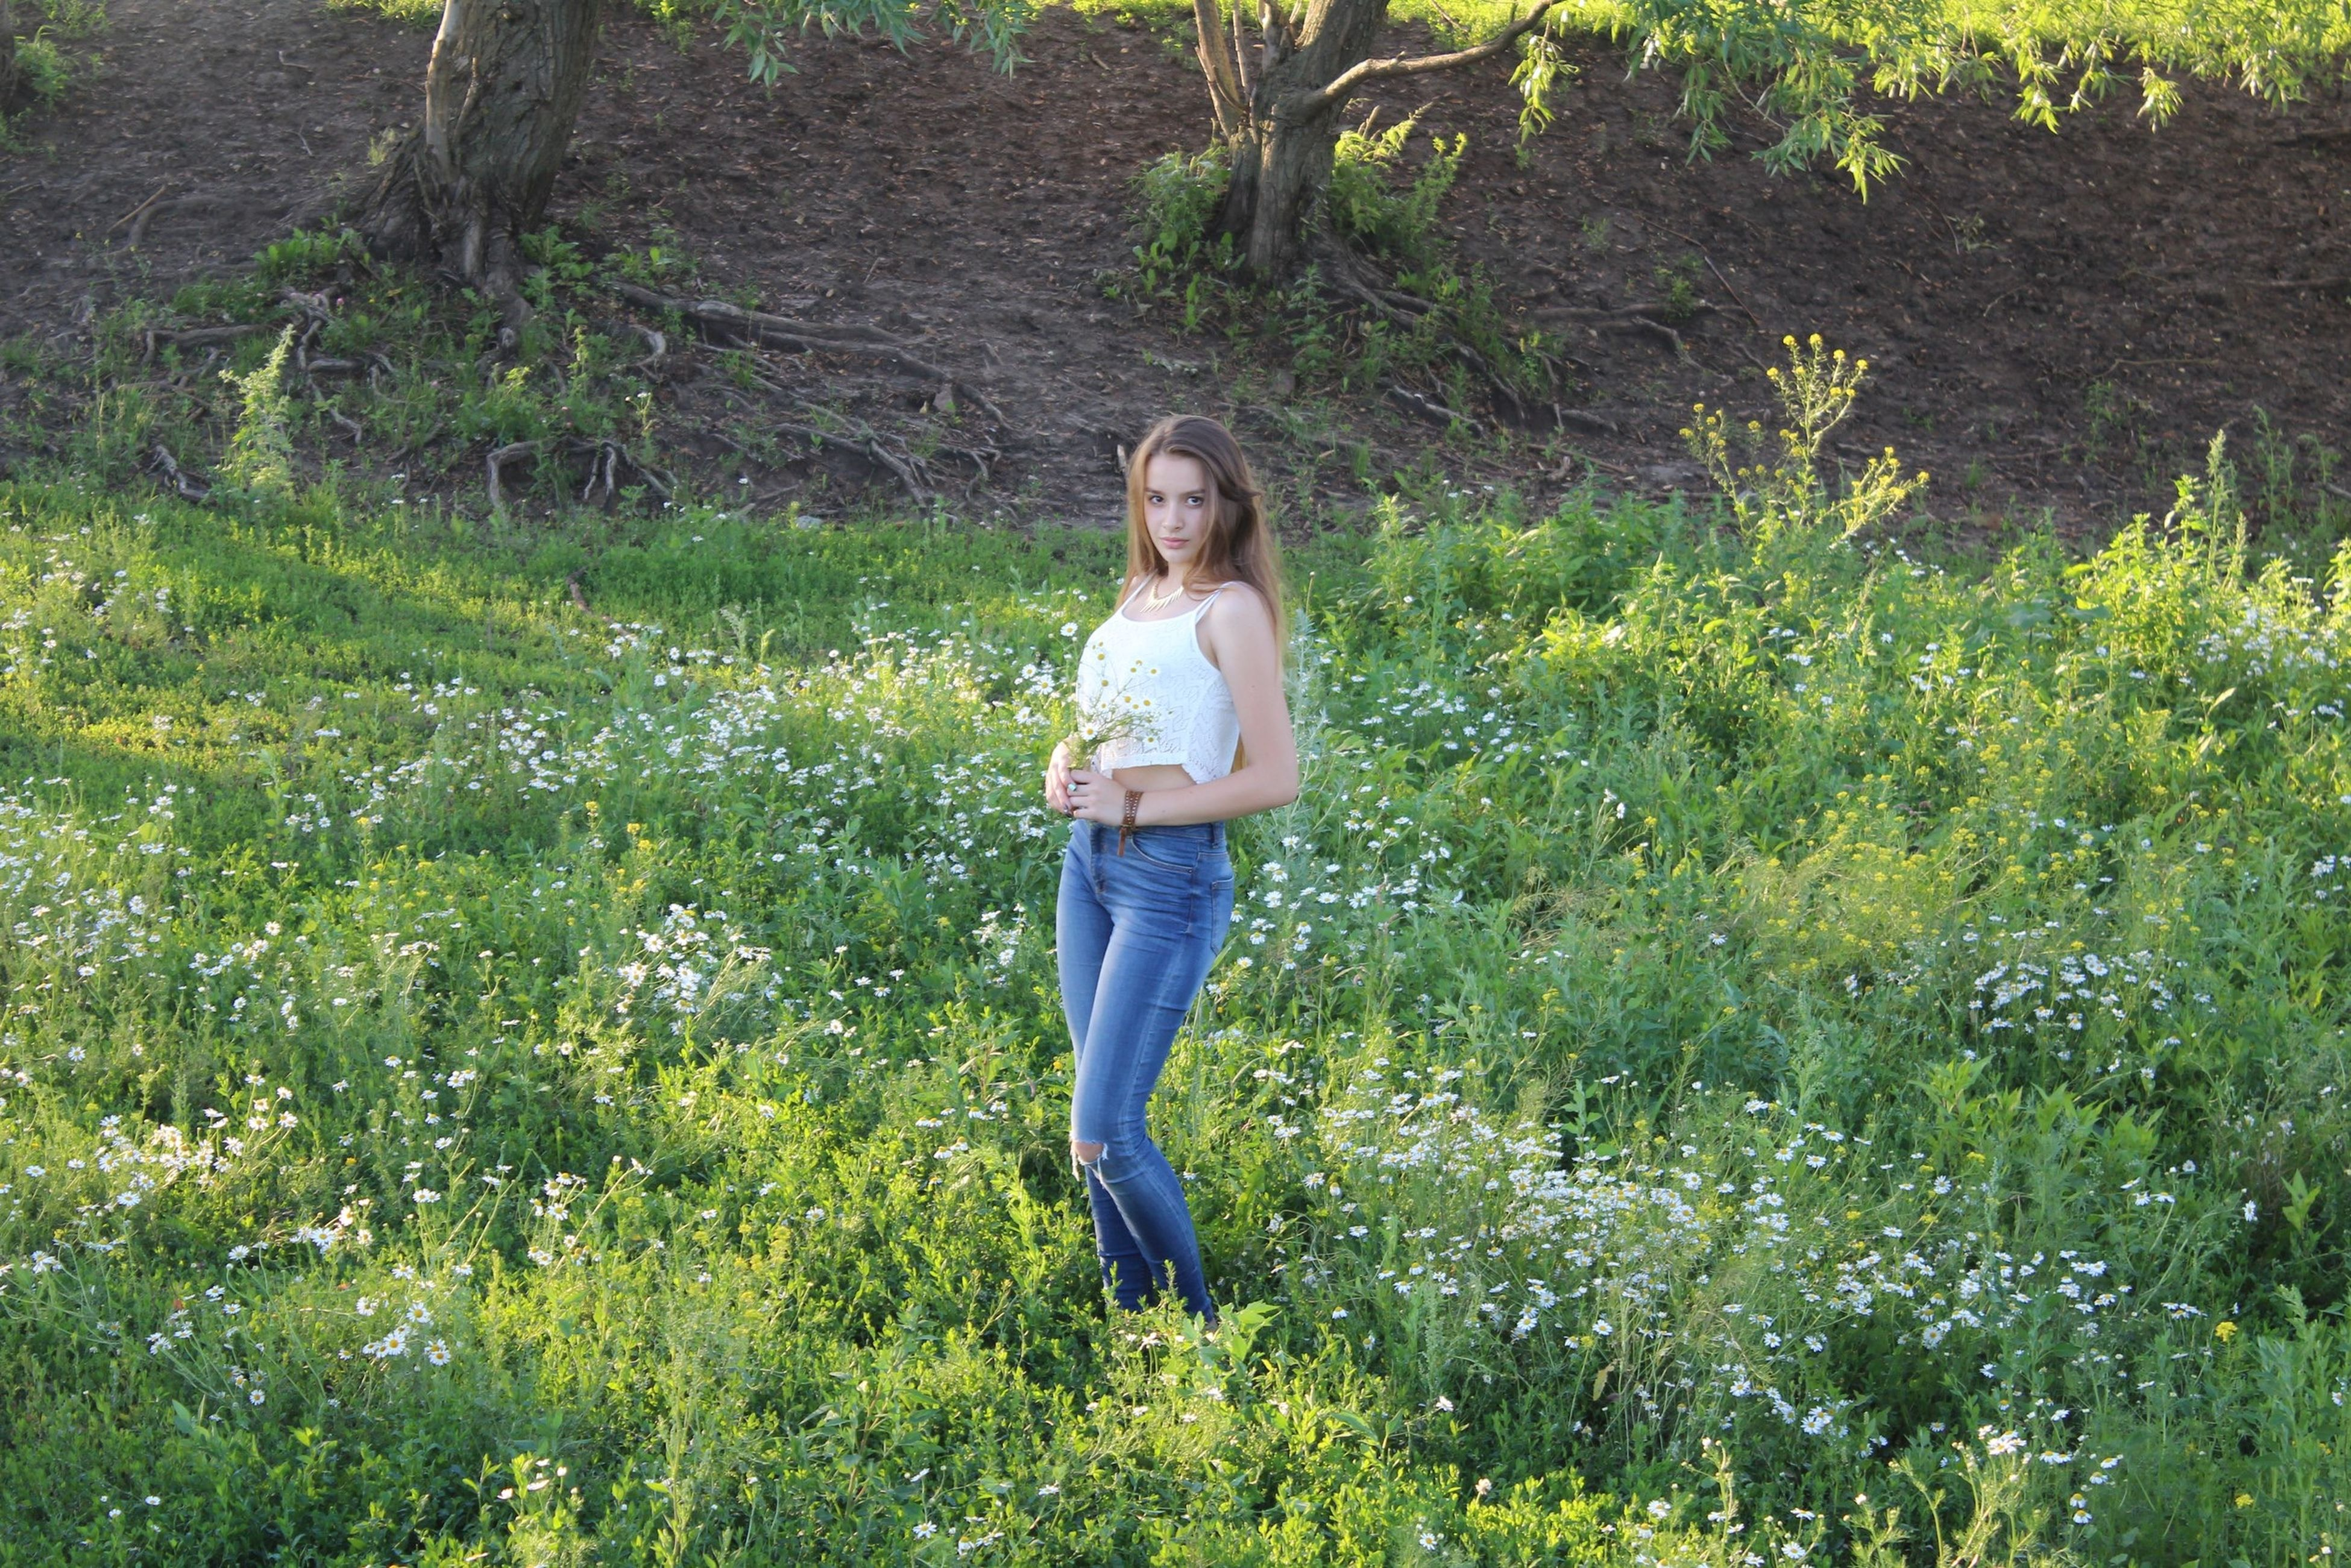 casual clothing, full length, grass, young adult, lifestyles, person, standing, leisure activity, growth, young women, front view, portrait, green color, plant, field, tree, looking at camera, nature